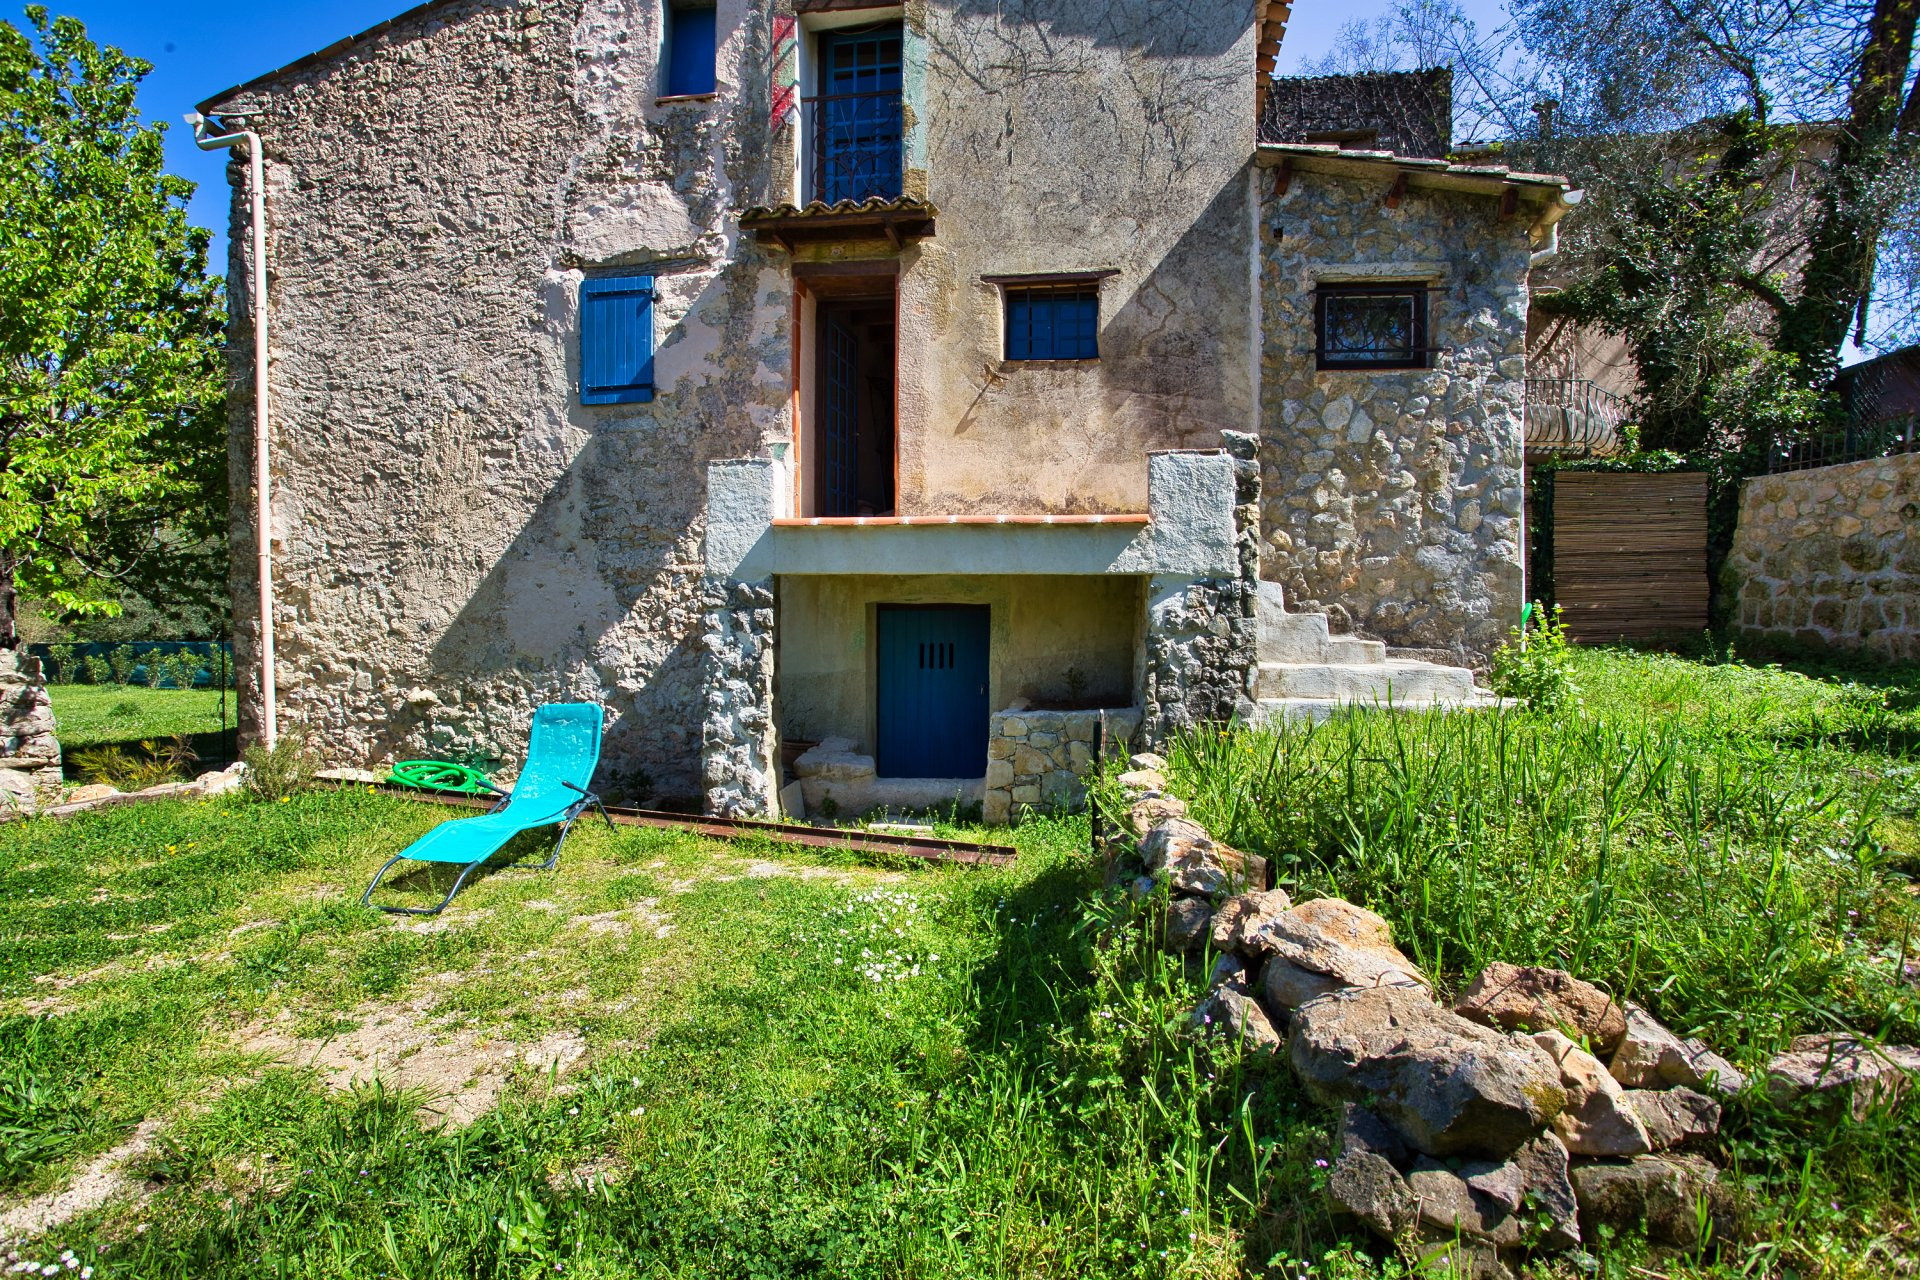 On the Côte d'Azur, Old stone sheepfold renovated with a lot of character.